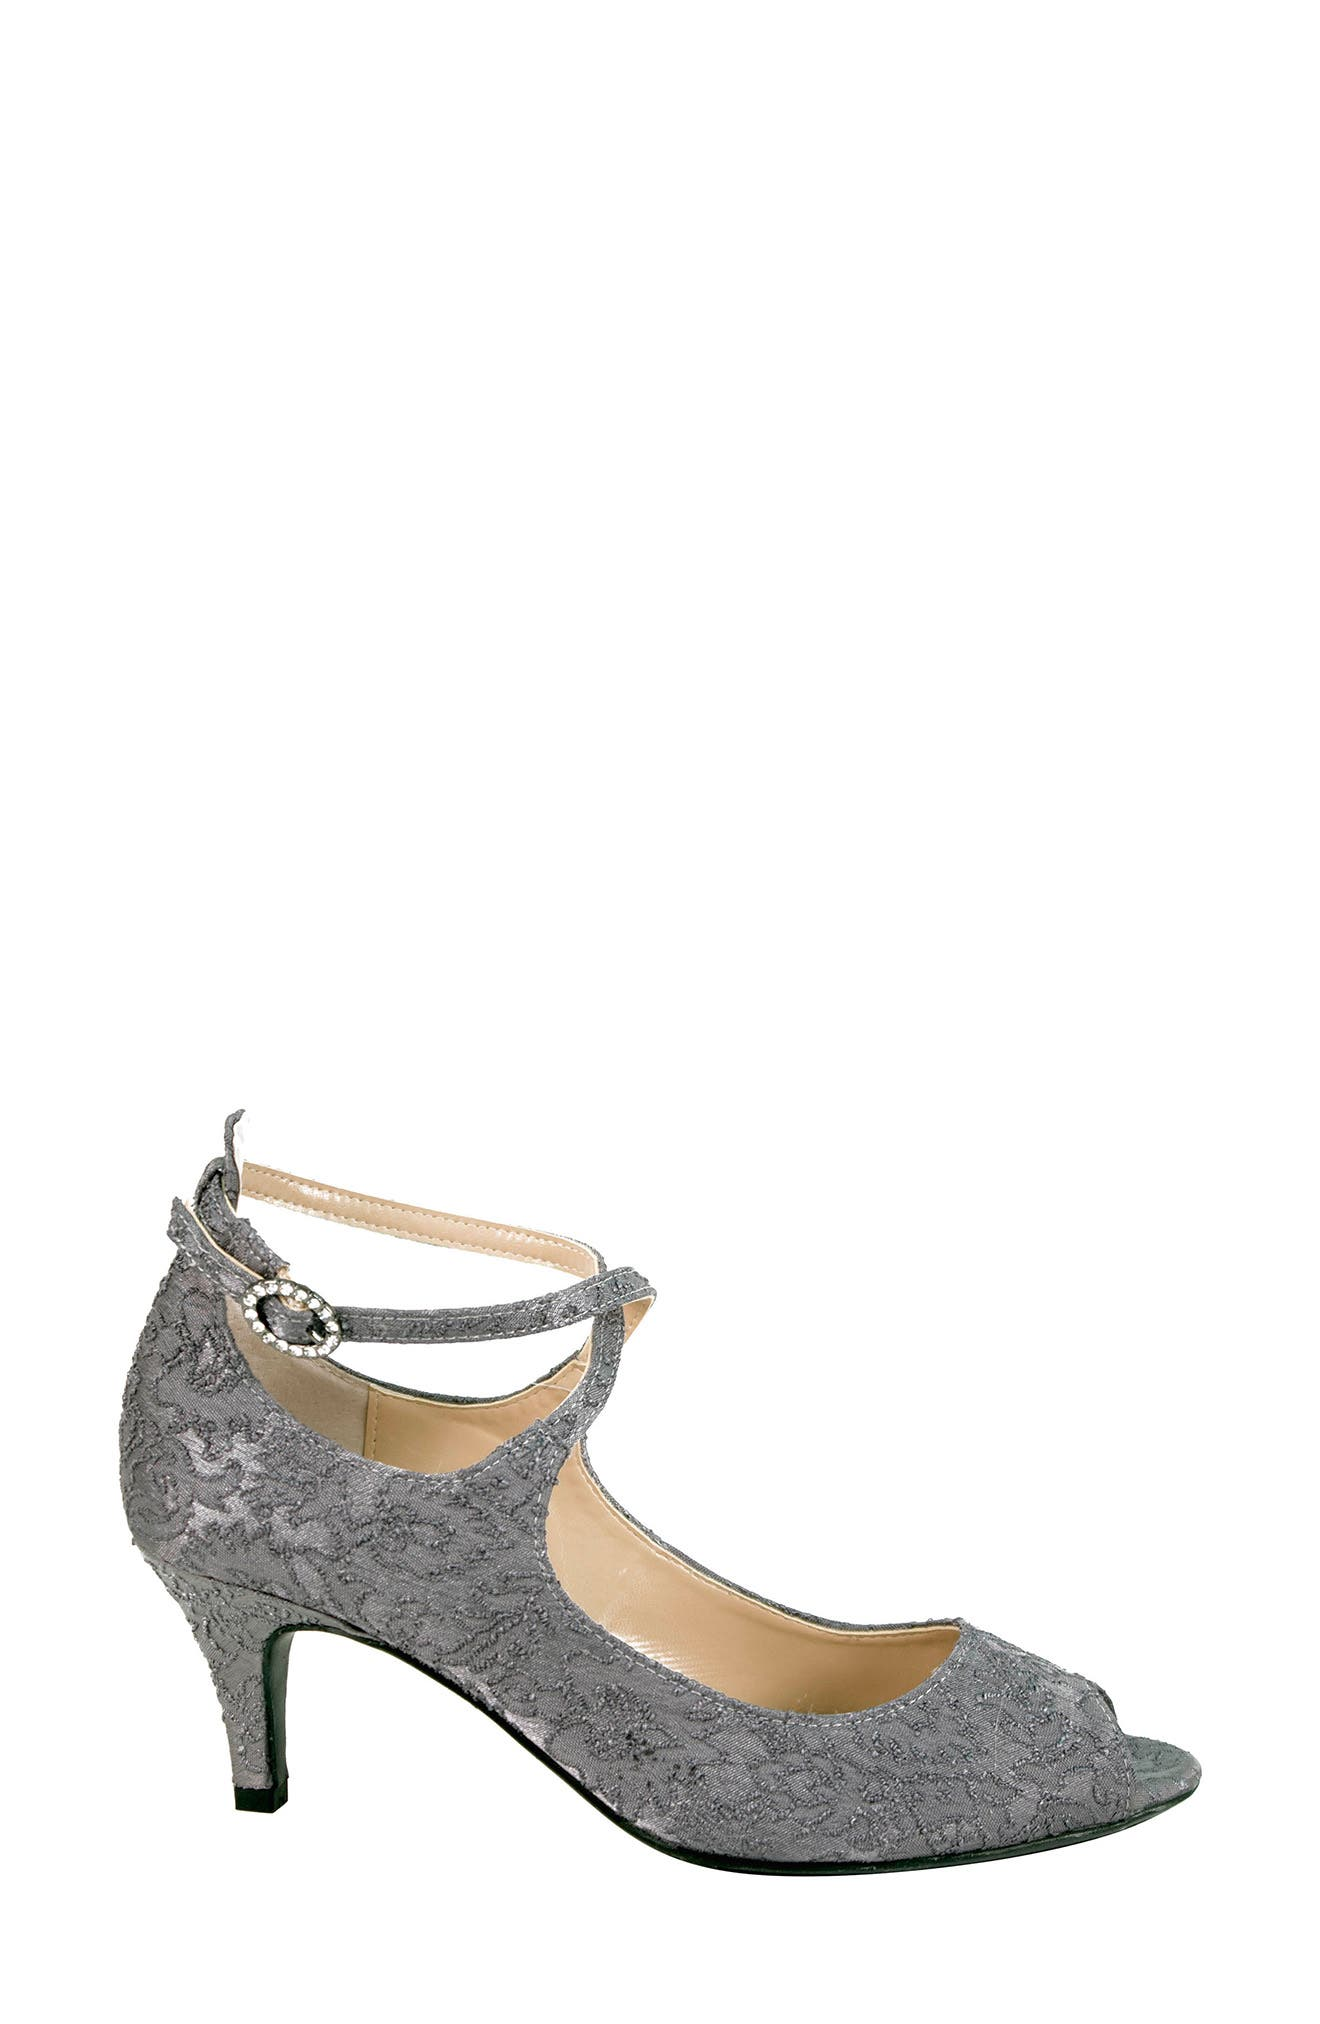 Alternate Image 3  - J. Reneé Rolyne Peep Toe Pump (Women)